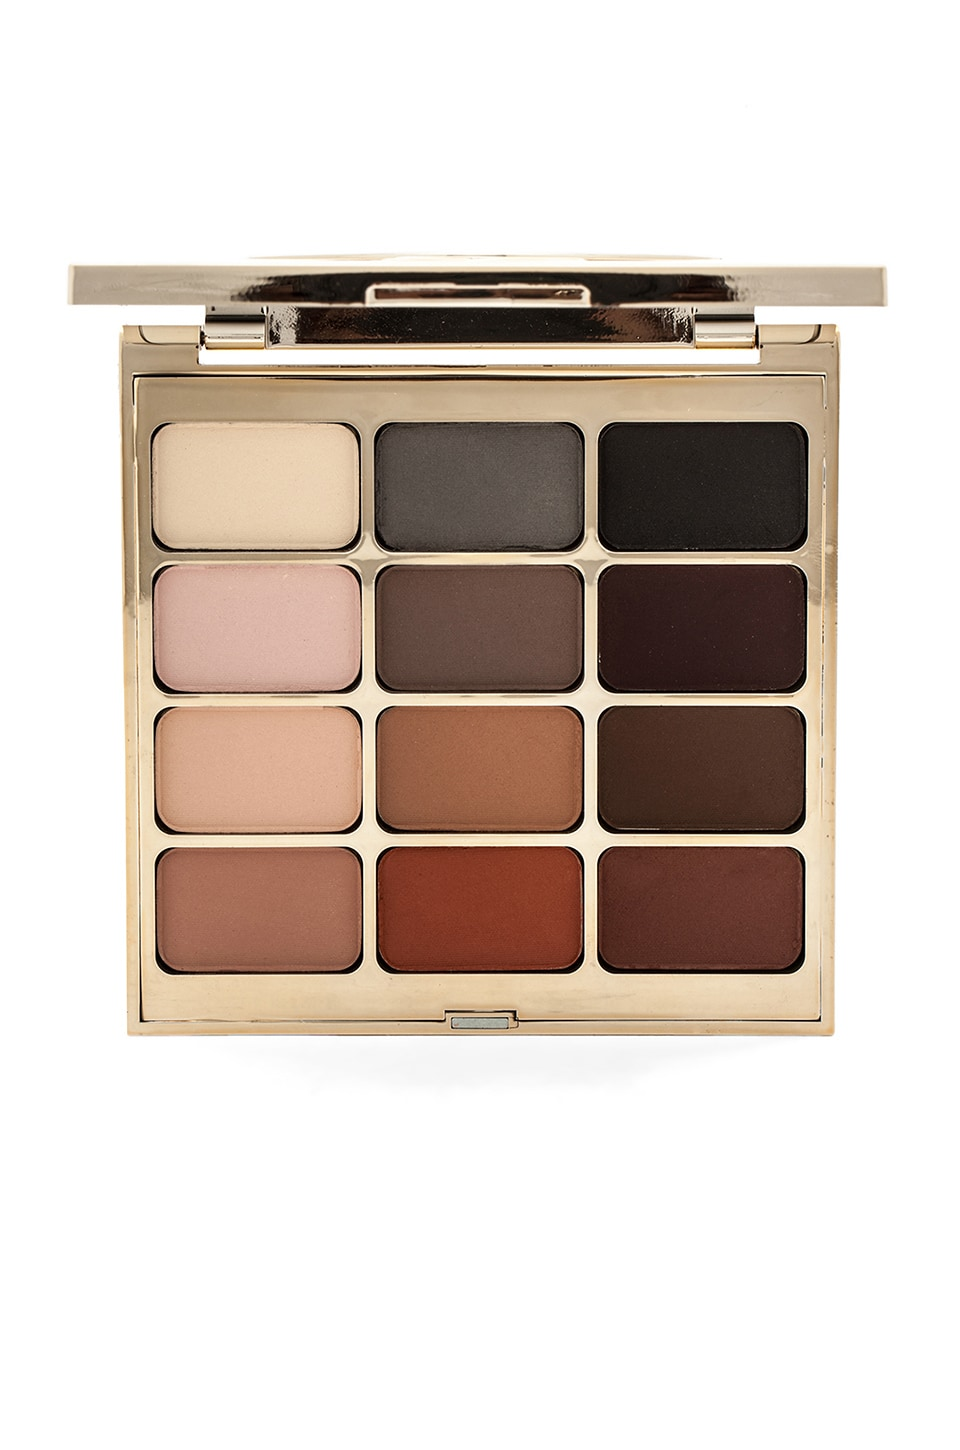 Stila Eyes Are The Window Shadow Palette in Mind